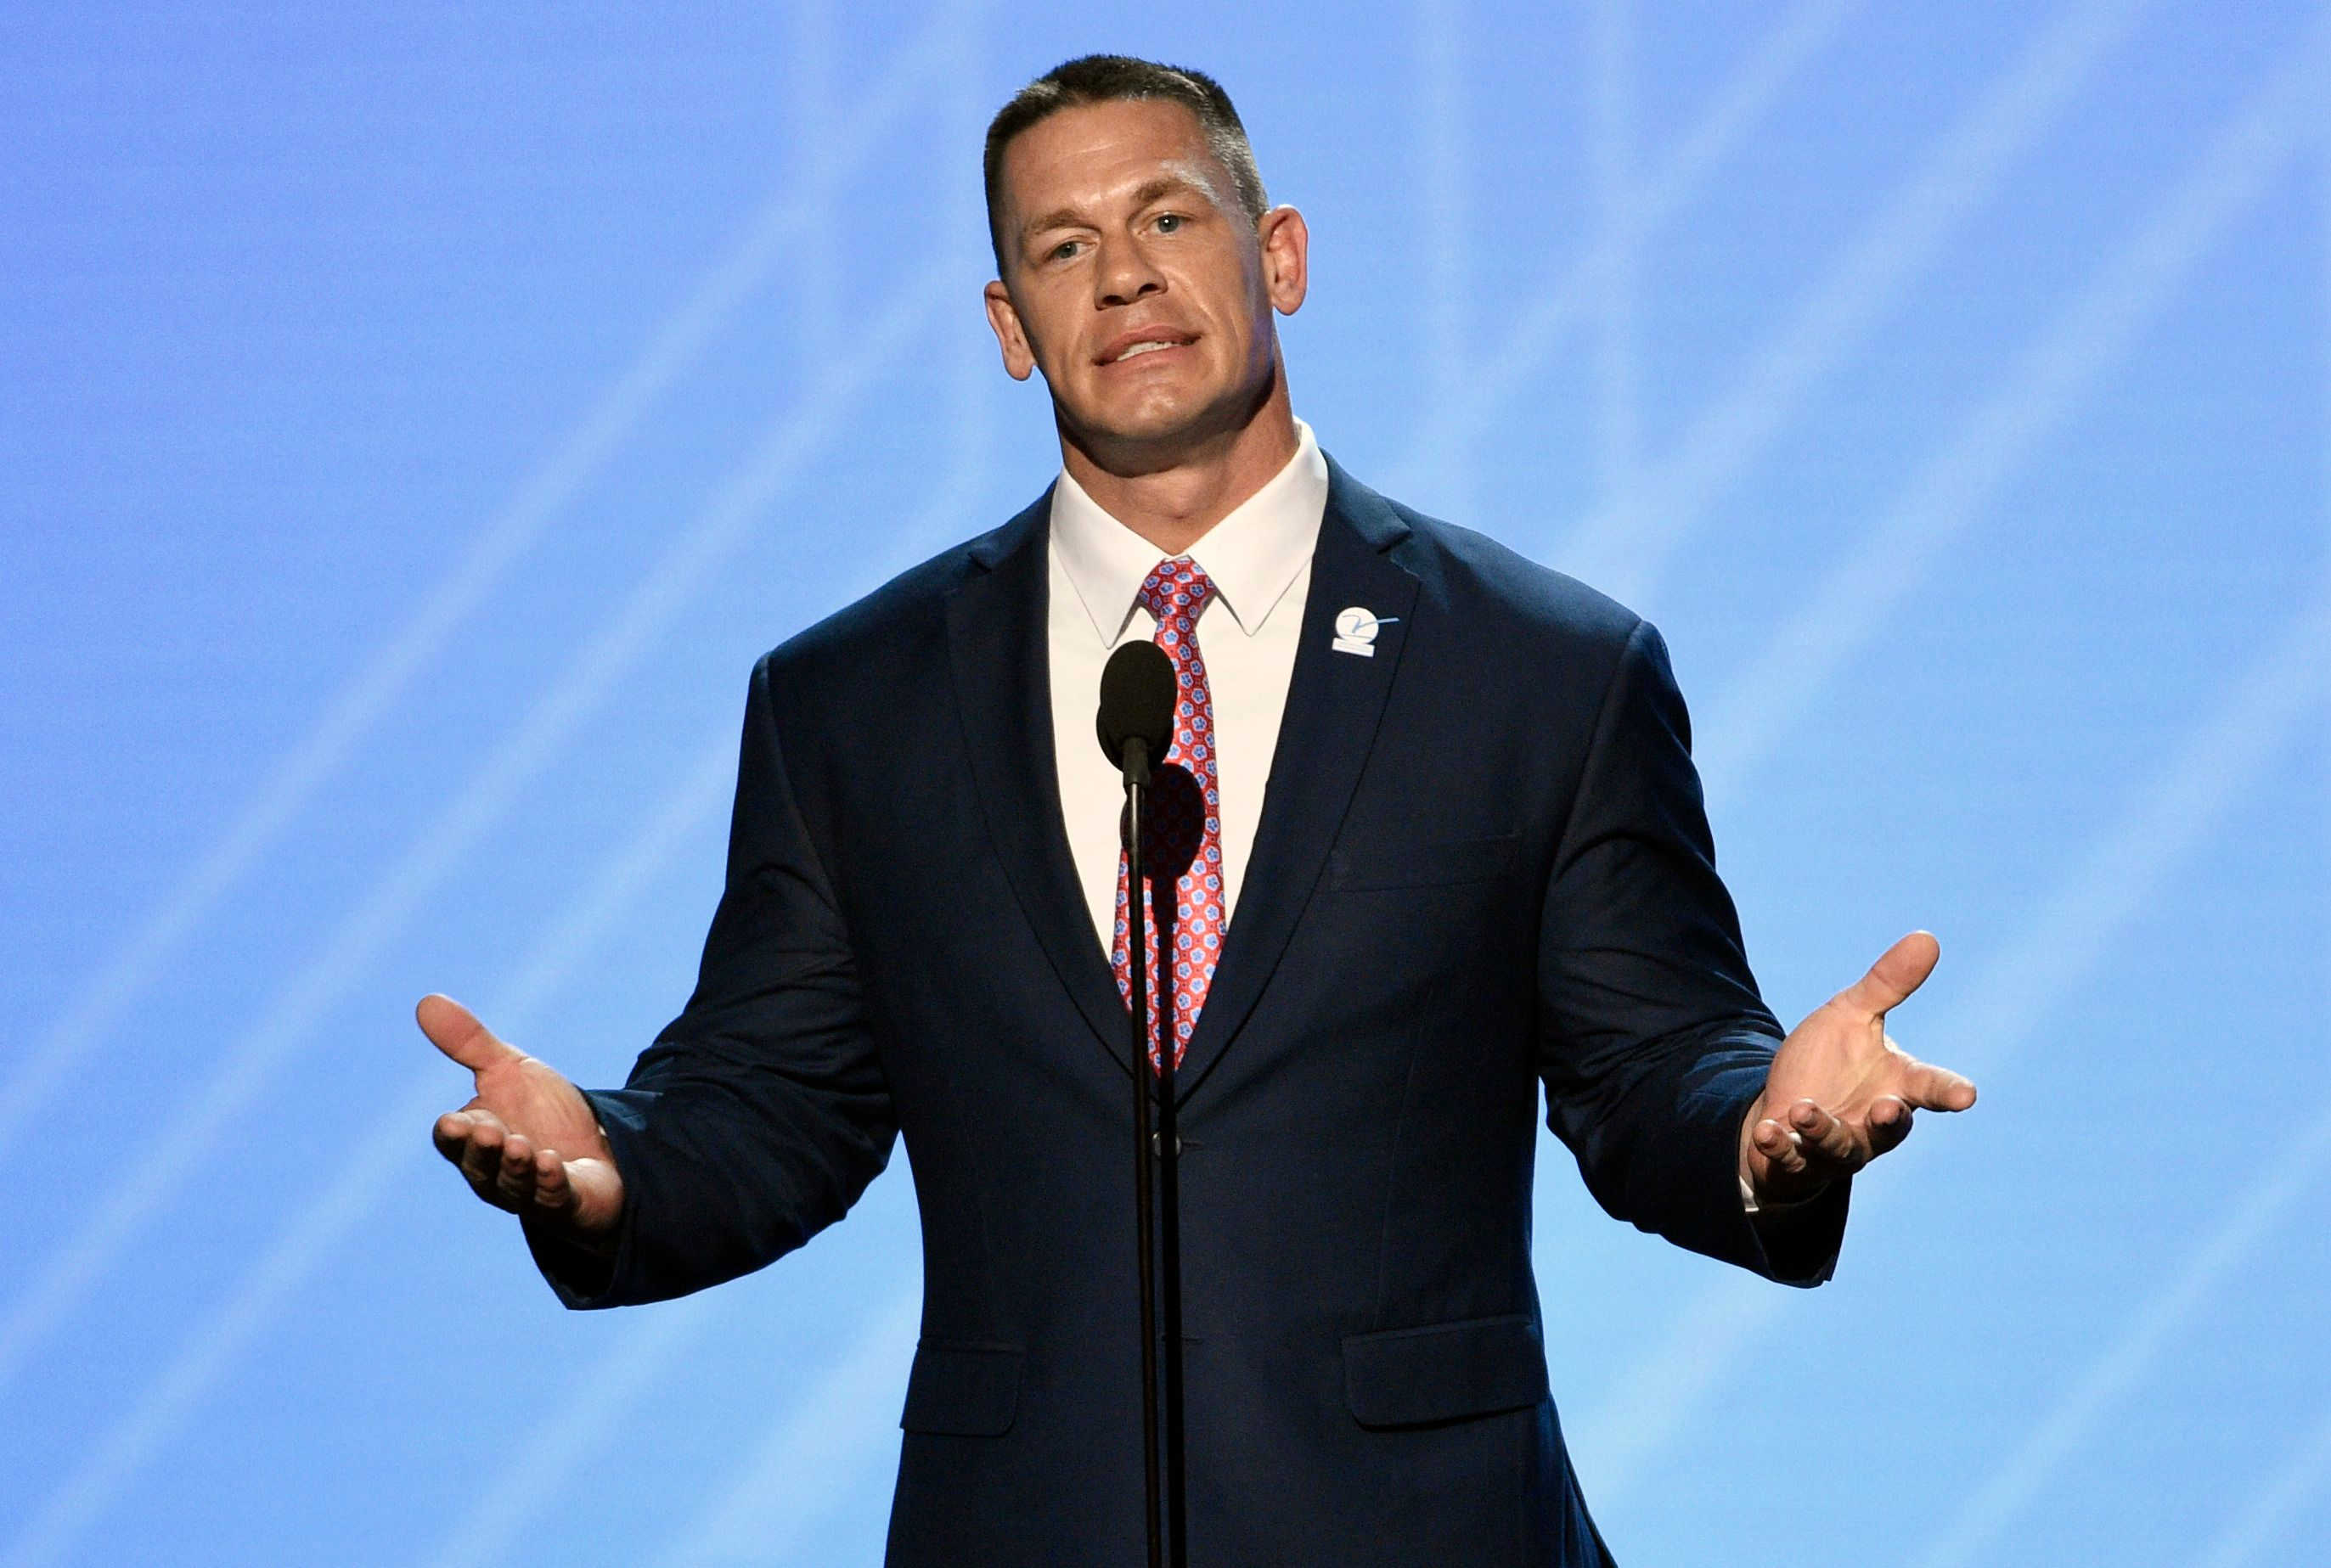 FILE - In this July 12, 2017, file photo, John Cena presents the Jimmy V perseverance award at the ESPYS in Los Angeles. WWE is set to hold its Crown Jewel event Friday, Nov. 2, 2018, in Riyadh, Saudi Arabia. Cena, the 15-year face of the company who could not be reached for comment, was widely reported to have misgivings about his participation in the event and how it might affect his blossoming movie career. (Photo by Chris Pizzello/Invision/AP, File)